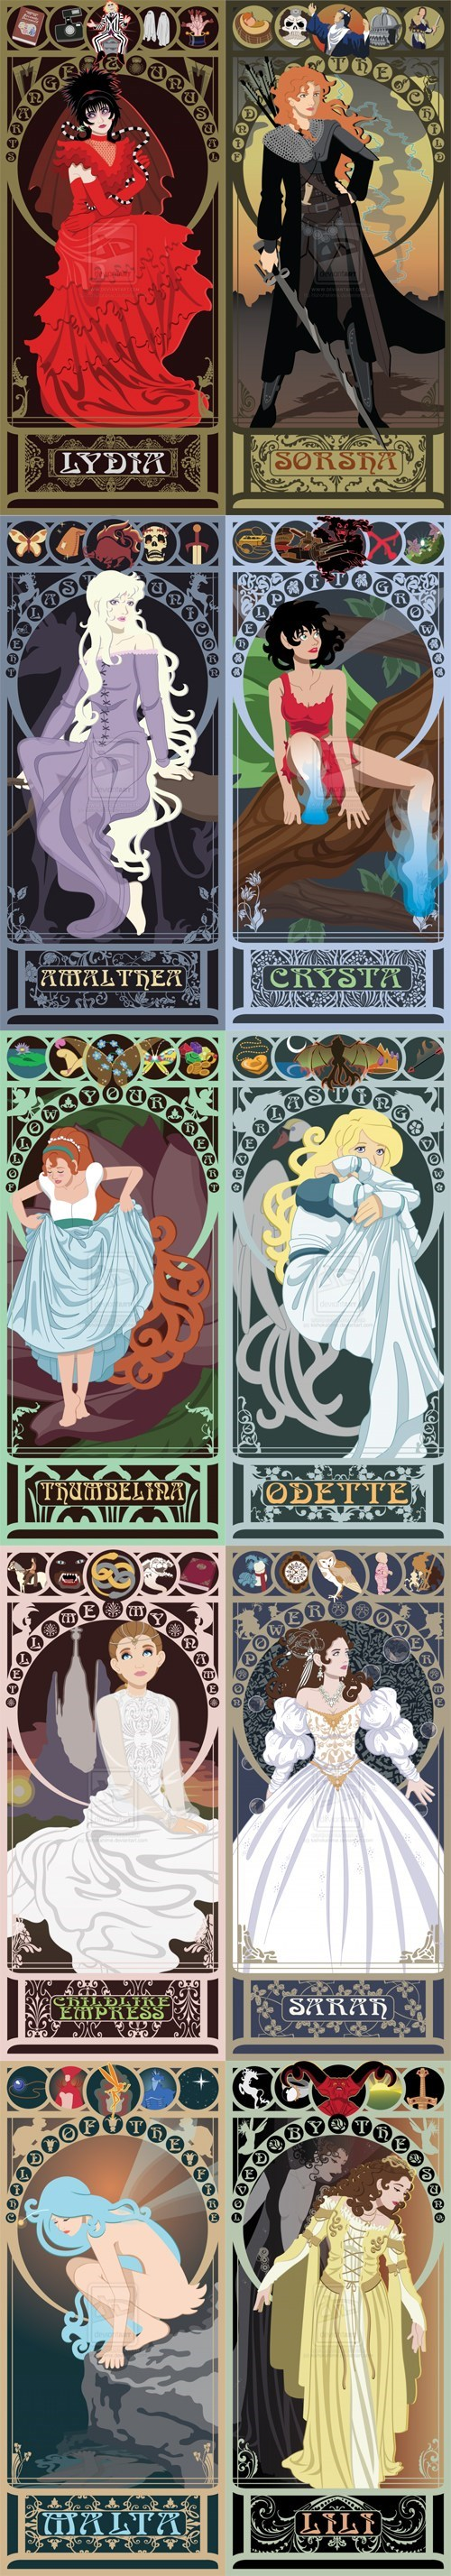 sarah,Amalthea,fantasy,the swan princess,odette,Malta,beetlejuice,Childlike Empress,nostalgia,fan art,legend,lili,Sea Prince and the Fire Child,thumbelina,heroines,art nouveau,Crysta,The Last Unicorn,lydia,FernGully-The-Last-Rainforest,neverending story,willow,labyrinth,Sorsha